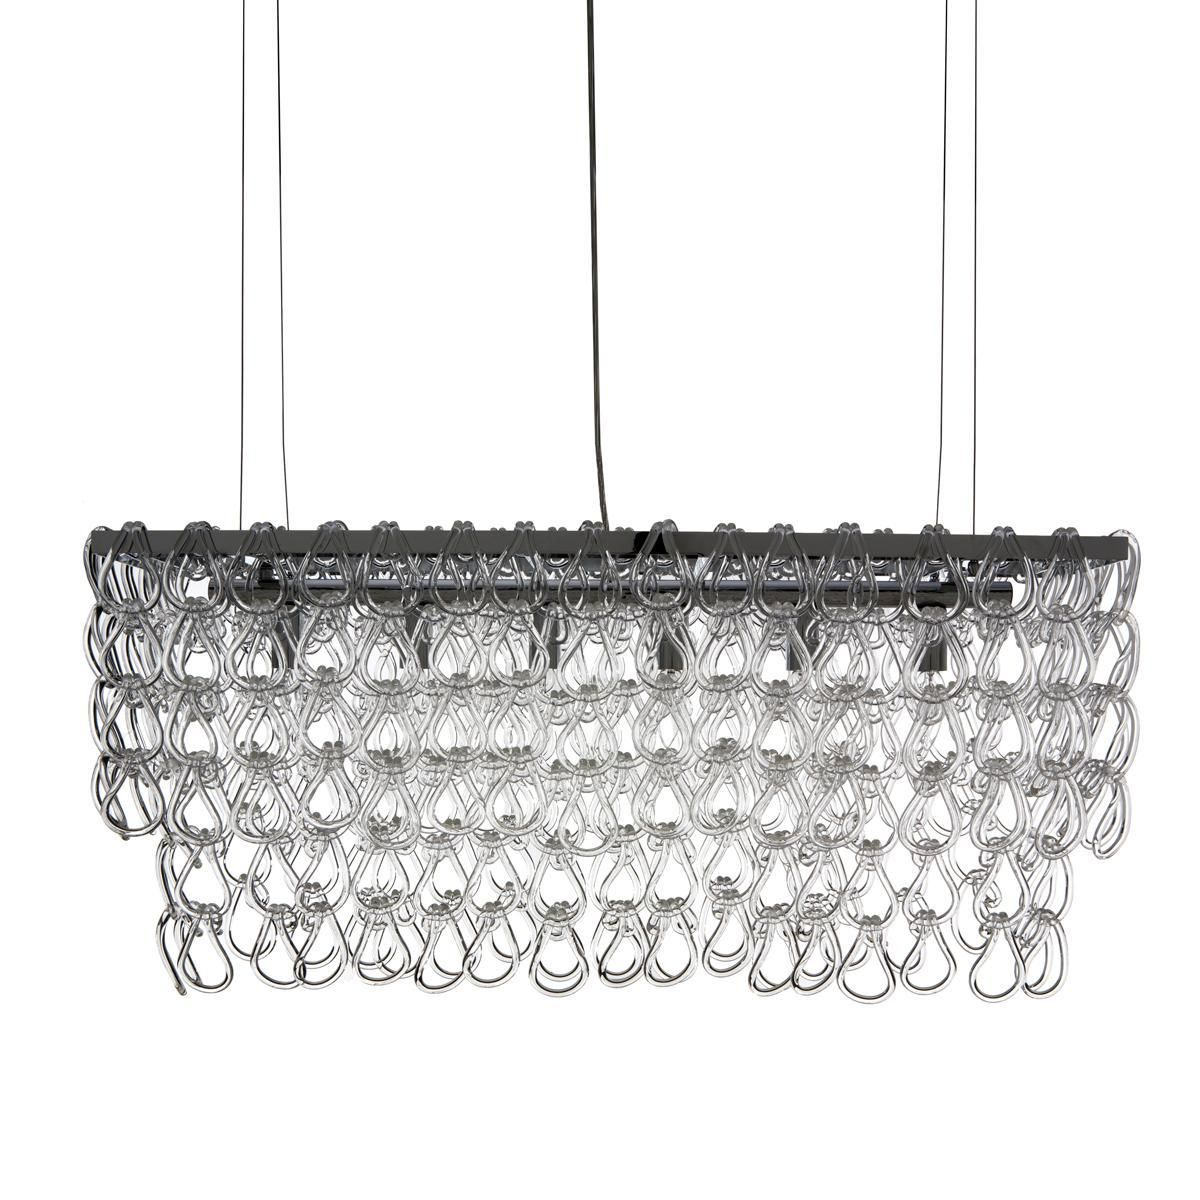 Glass Chain Island Chandelier Available At Shadesoflight Com Glass Chain Links Hang From Chrom Pendant Lamp Hanging Pendant Lights Contemporary Pendant Lights